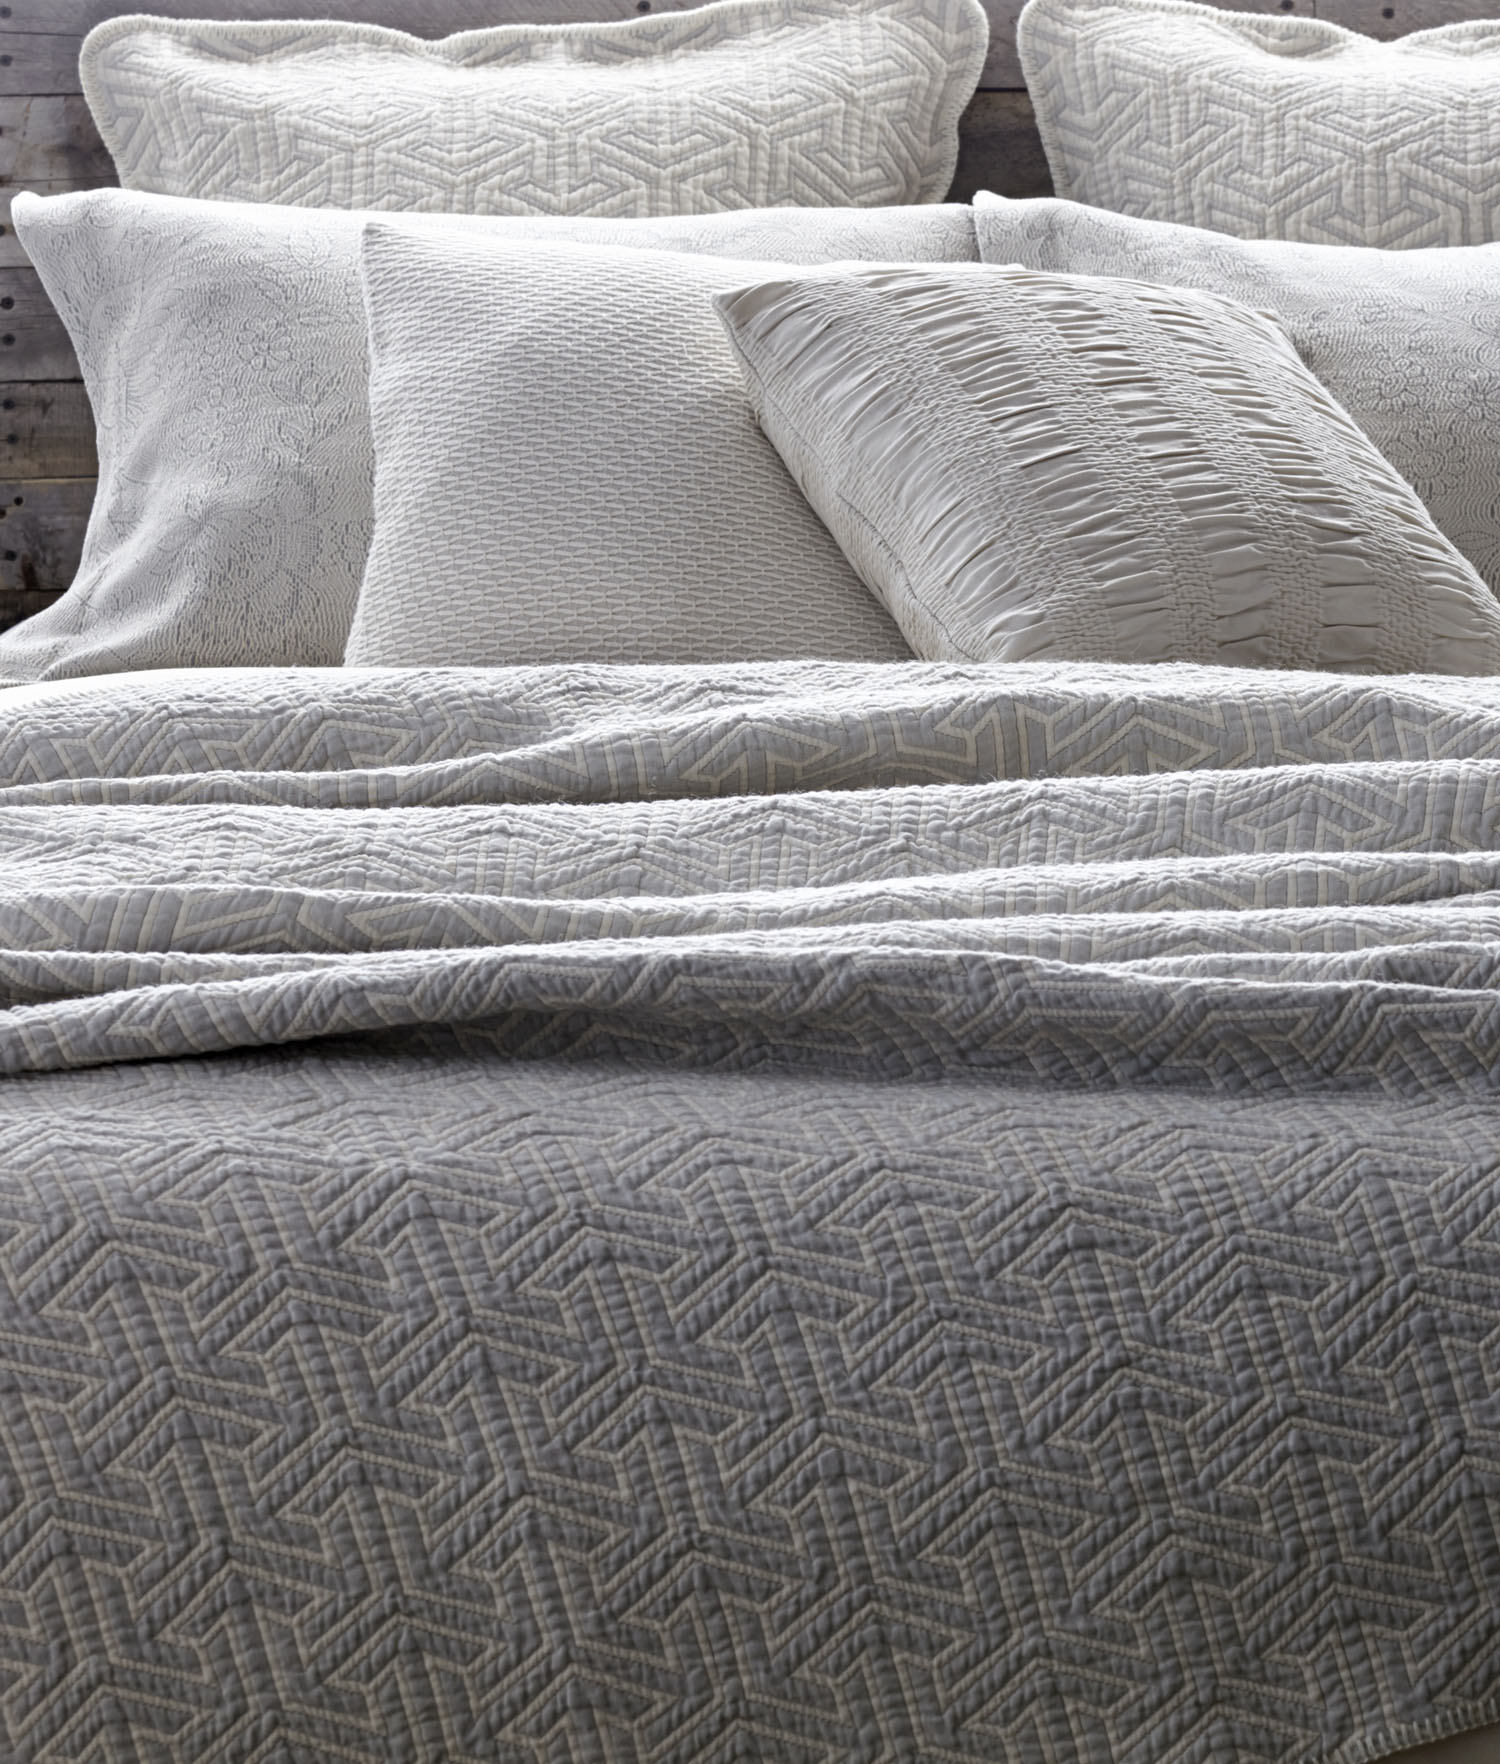 Amazing matelasse for bedding ideas with matelasse bedding